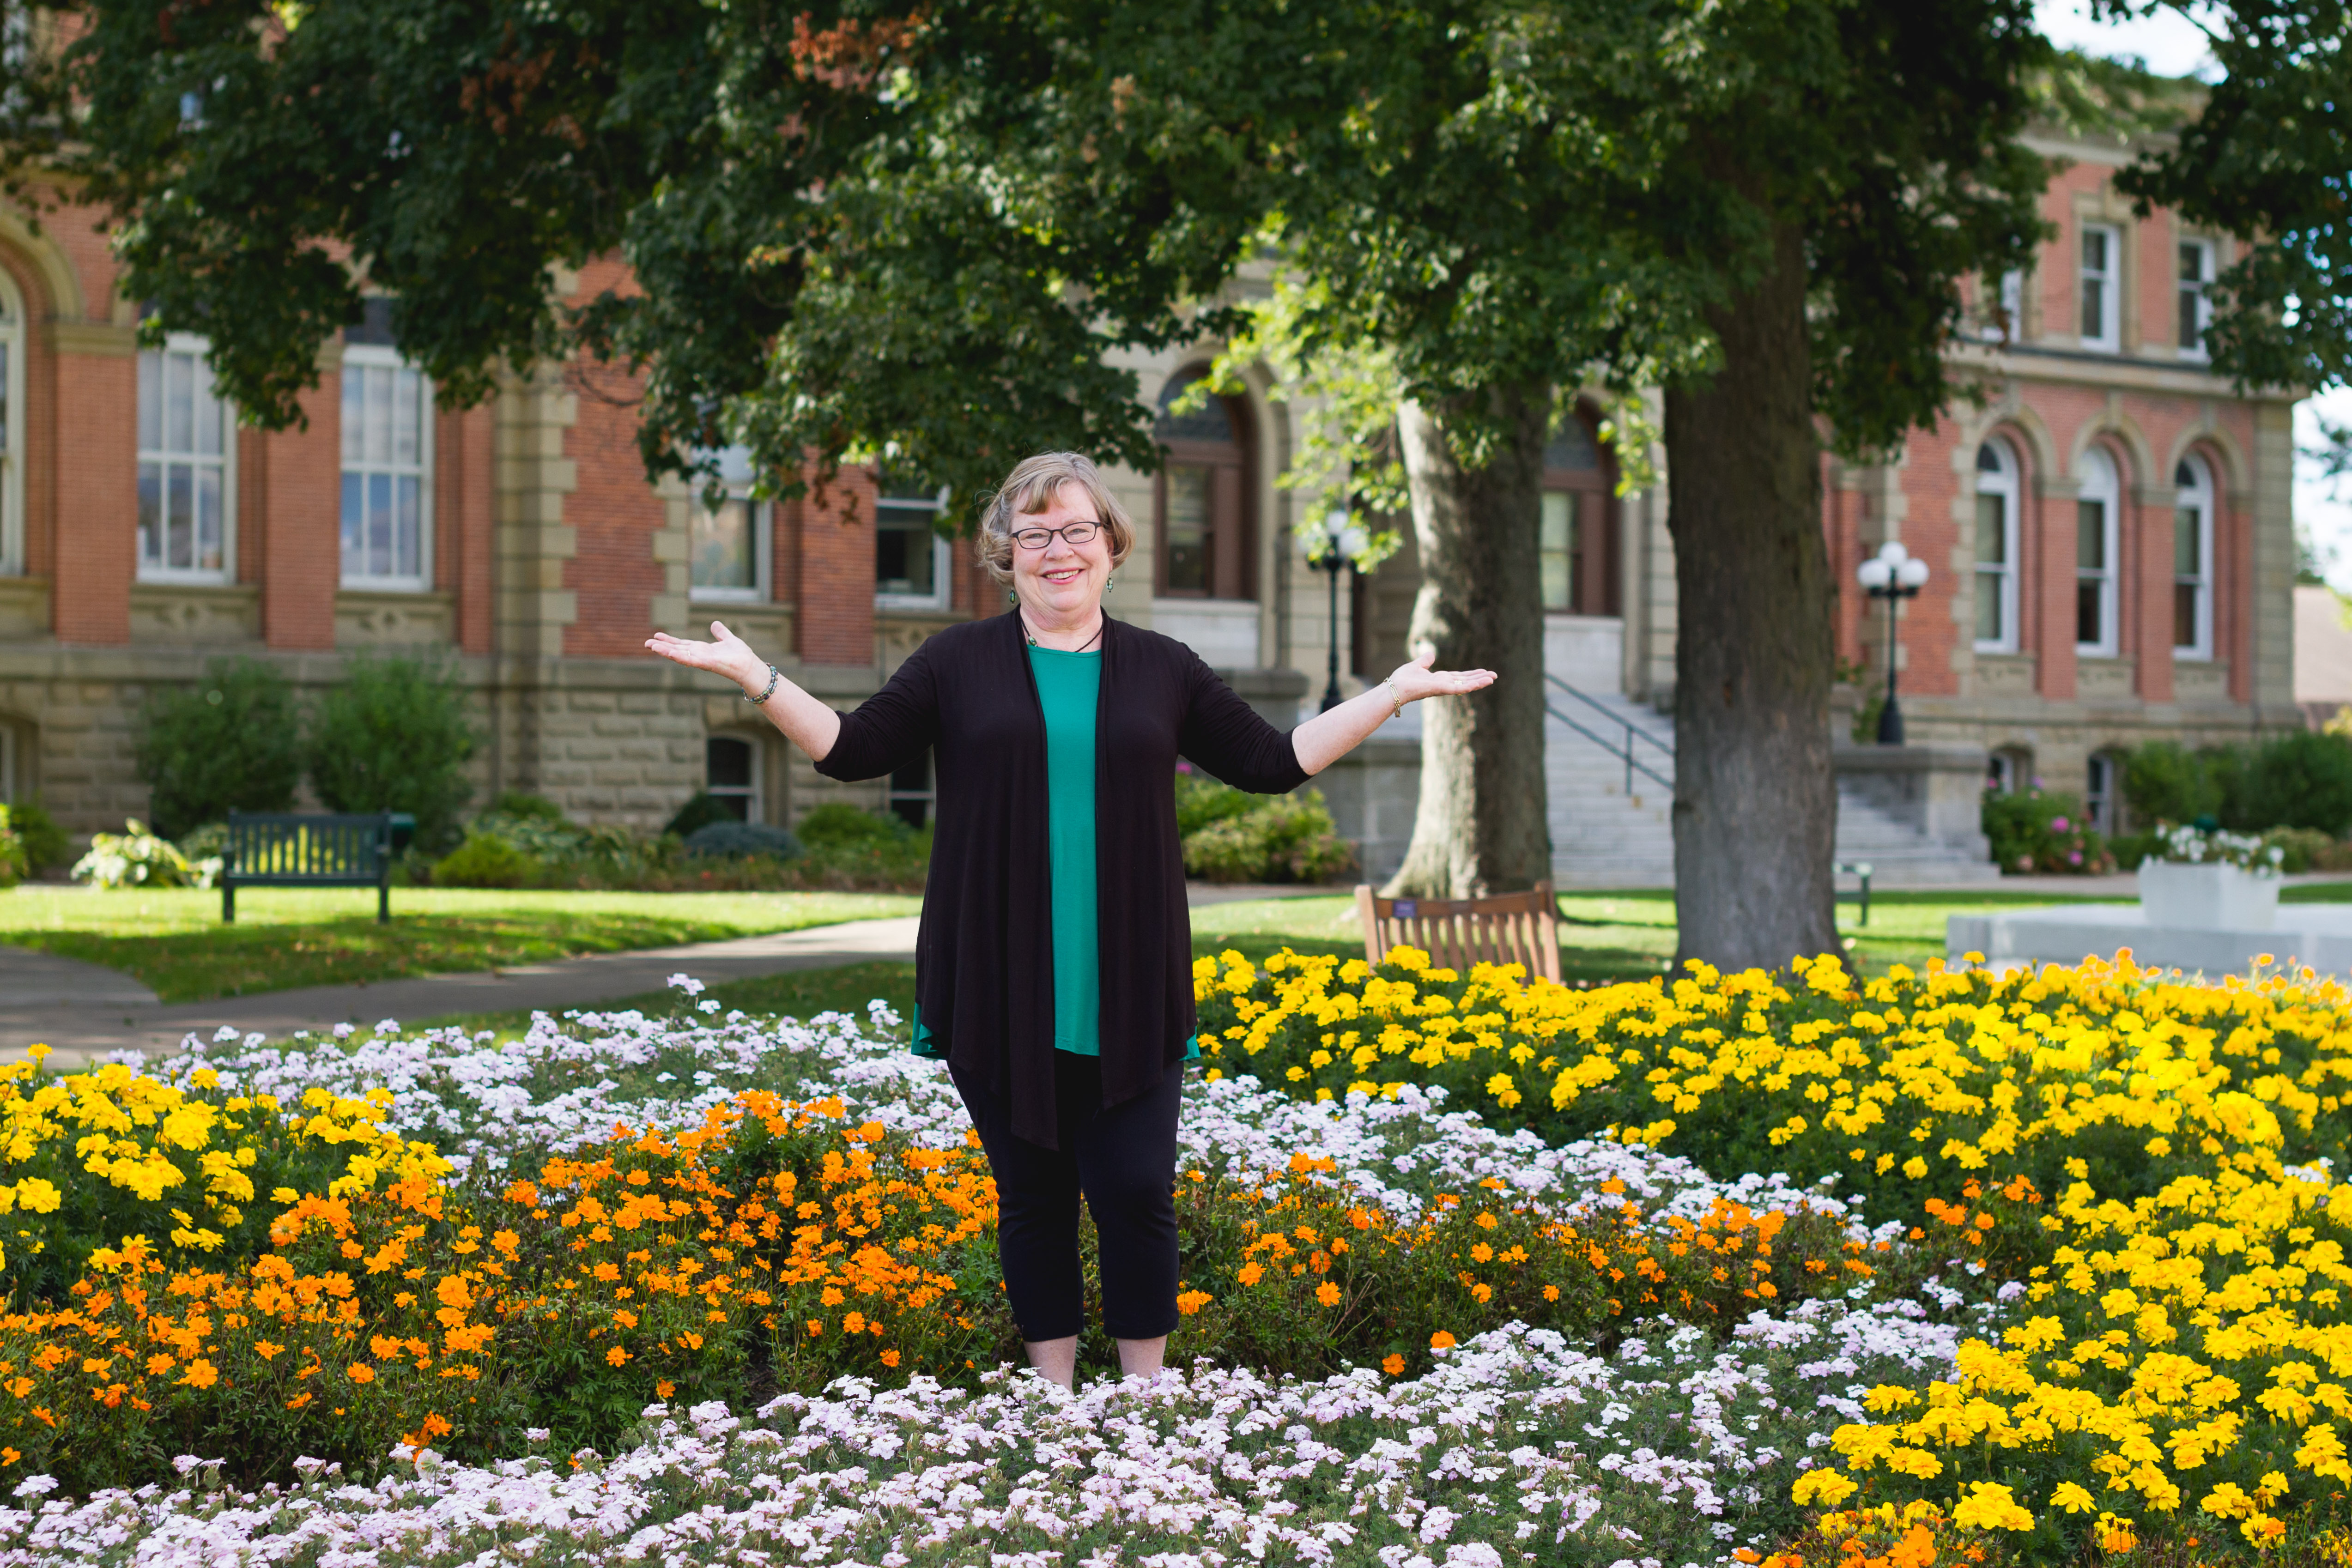 Love Where You Live: Janet Buccicone's leadership behind the beauty at downtown Goshen's Quilt Garden